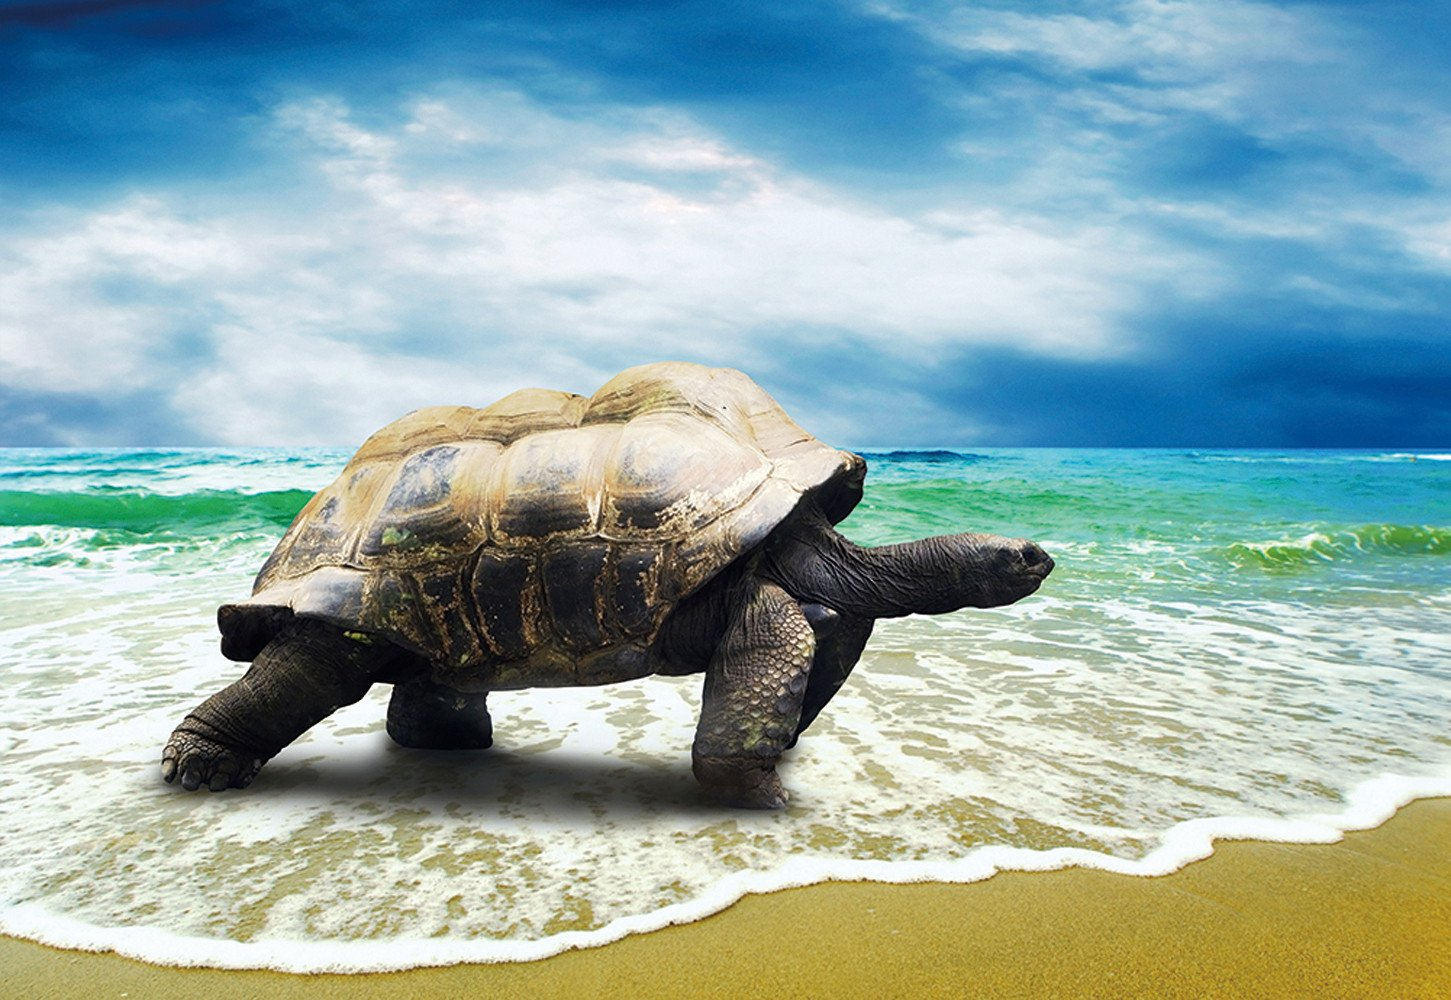 CHOIS Custom Films CF3201 Animal Tortoise Seaturtle Glass Window Privacy Frosted 4' W by 3' H